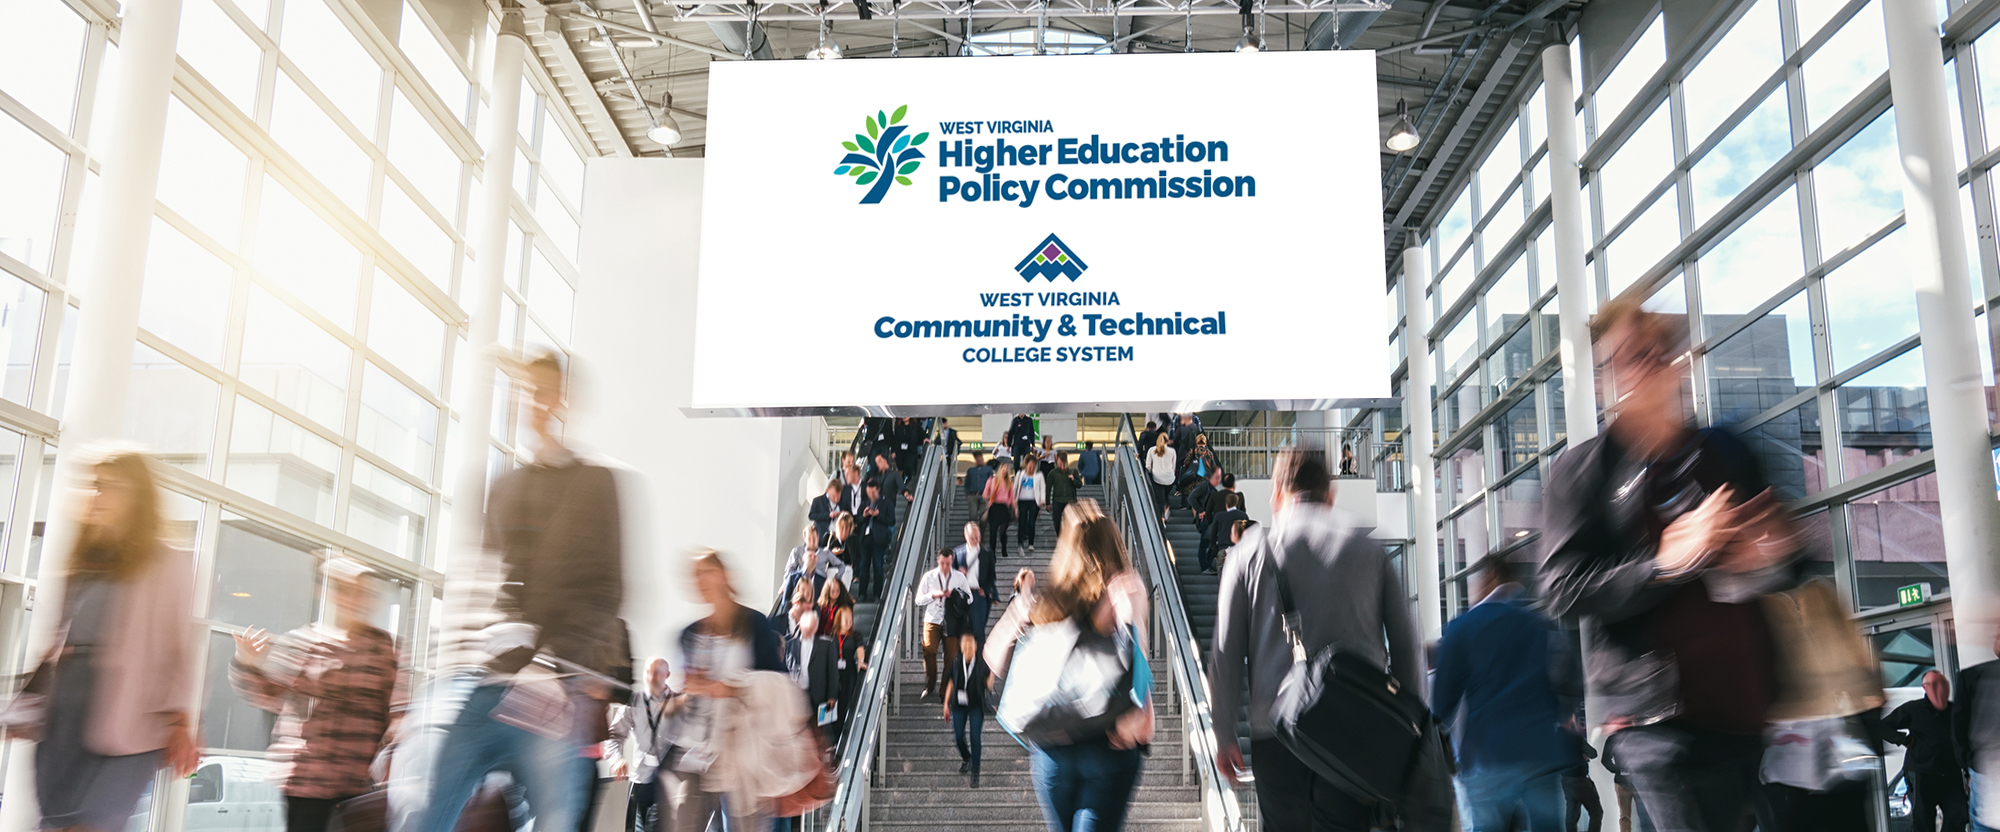 West Virginia Higher Education Policy Commission and West Virginia Community and Technical College System logos